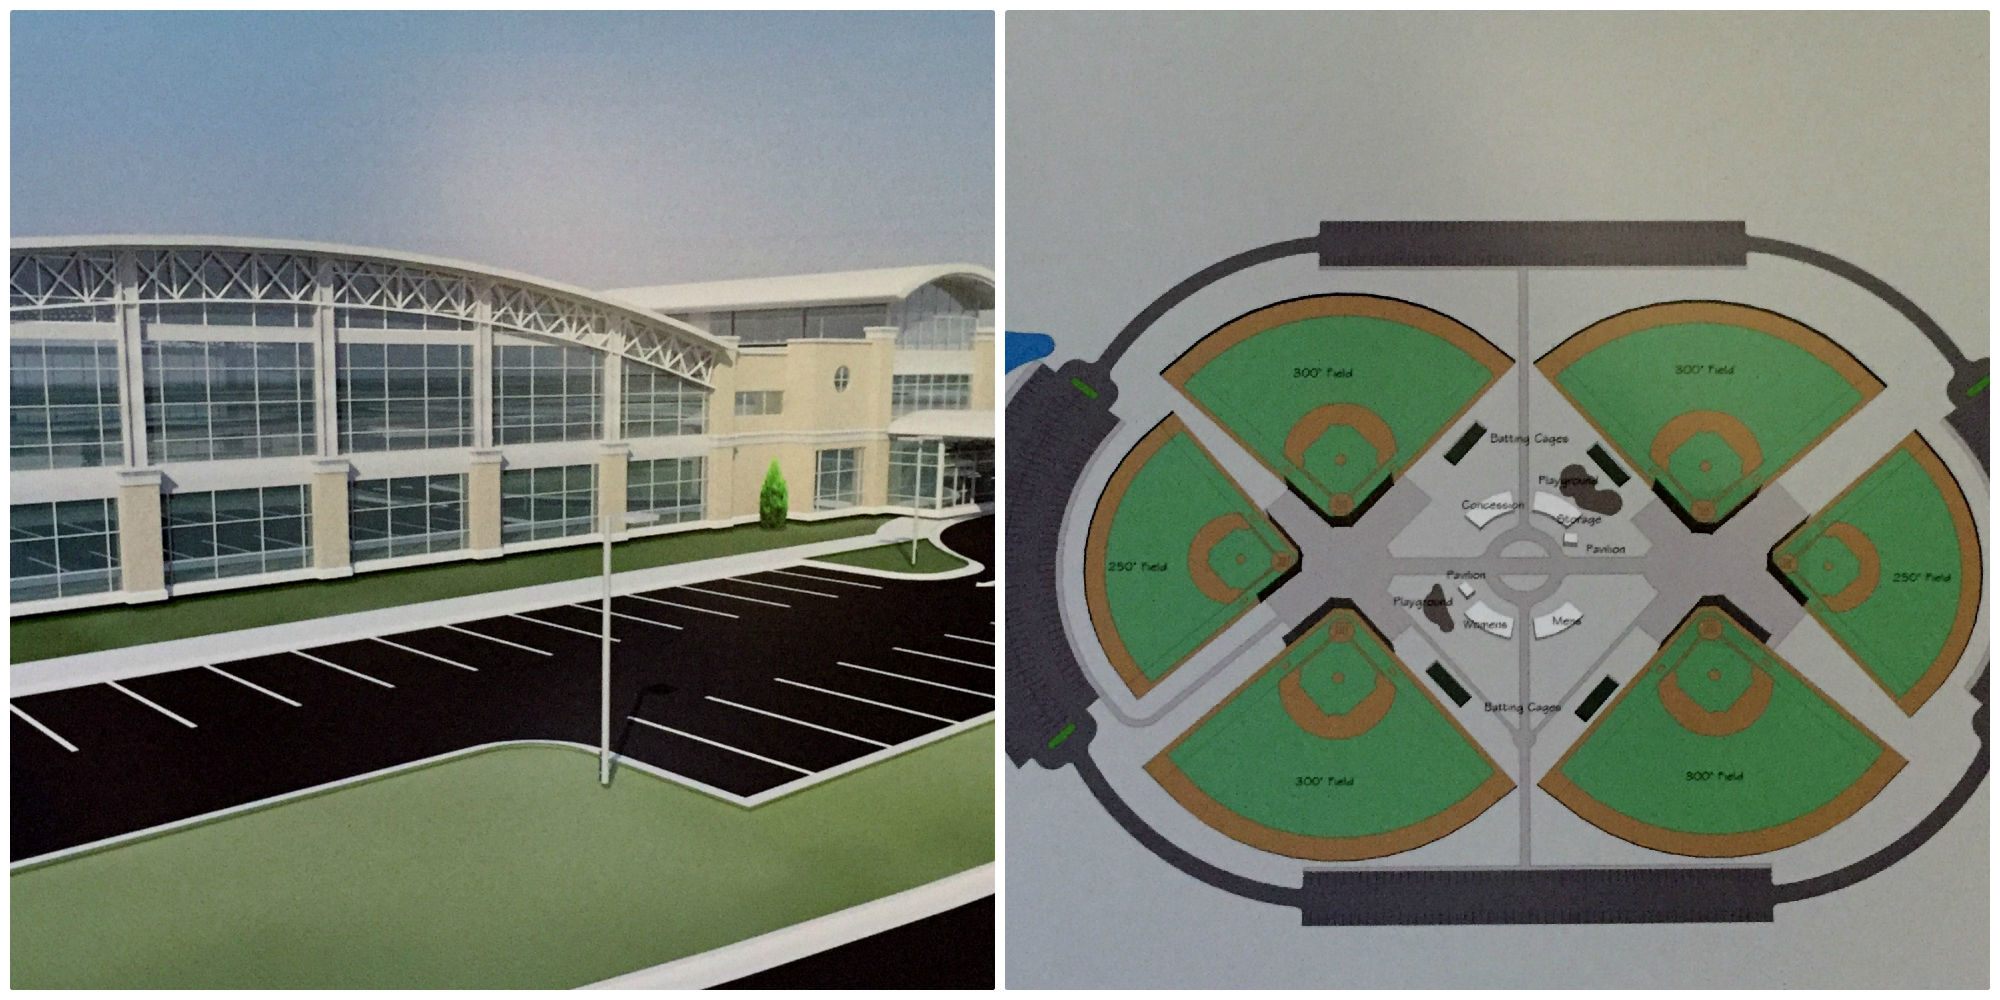 Recreation center and ballfields With election nearing